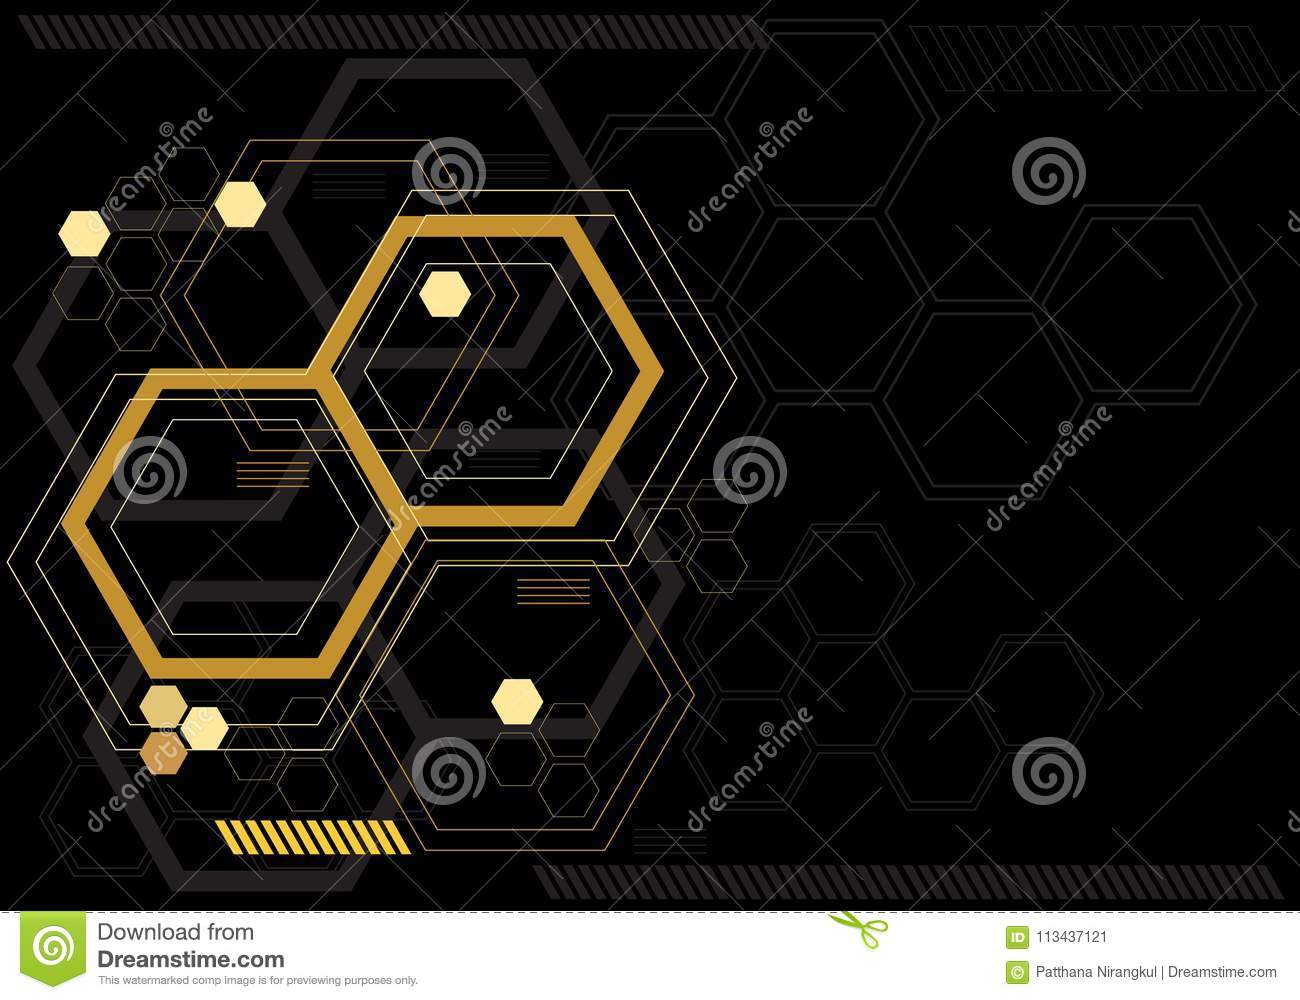 Abstract yellow hexagon digital graphic on black monitor technology computor design modern futuristic vector